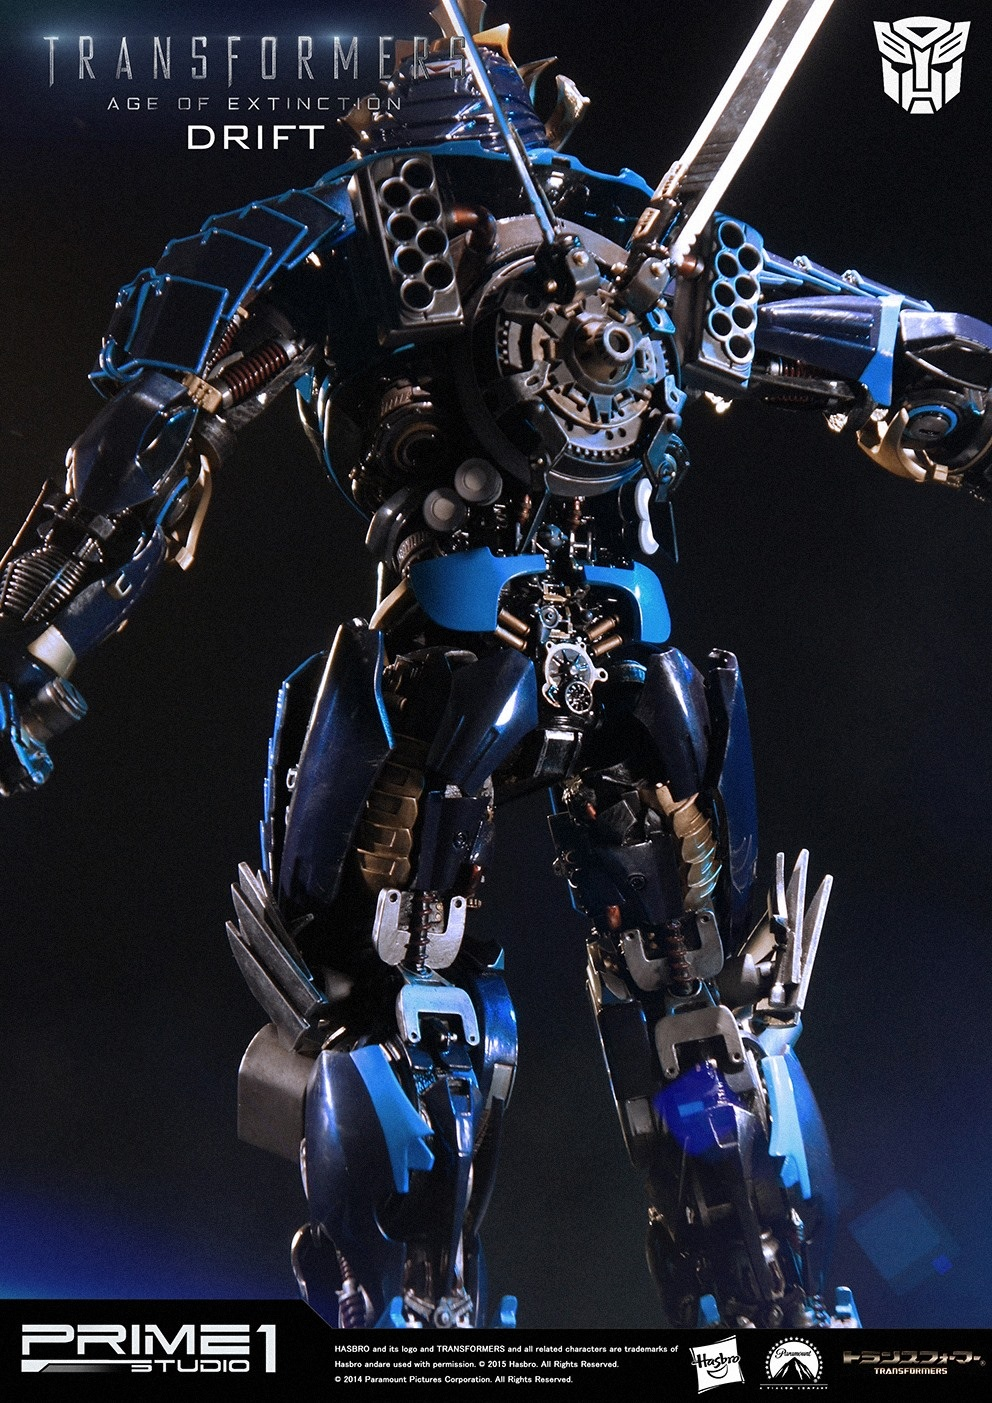 Statues des Films Transformers (articulé, non transformable) ― Par Prime1Studio, M3 Studio, Concept Zone, Super Fans Group, Soap Studio, Soldier Story Toys, etc - Page 3 375267image1423754608